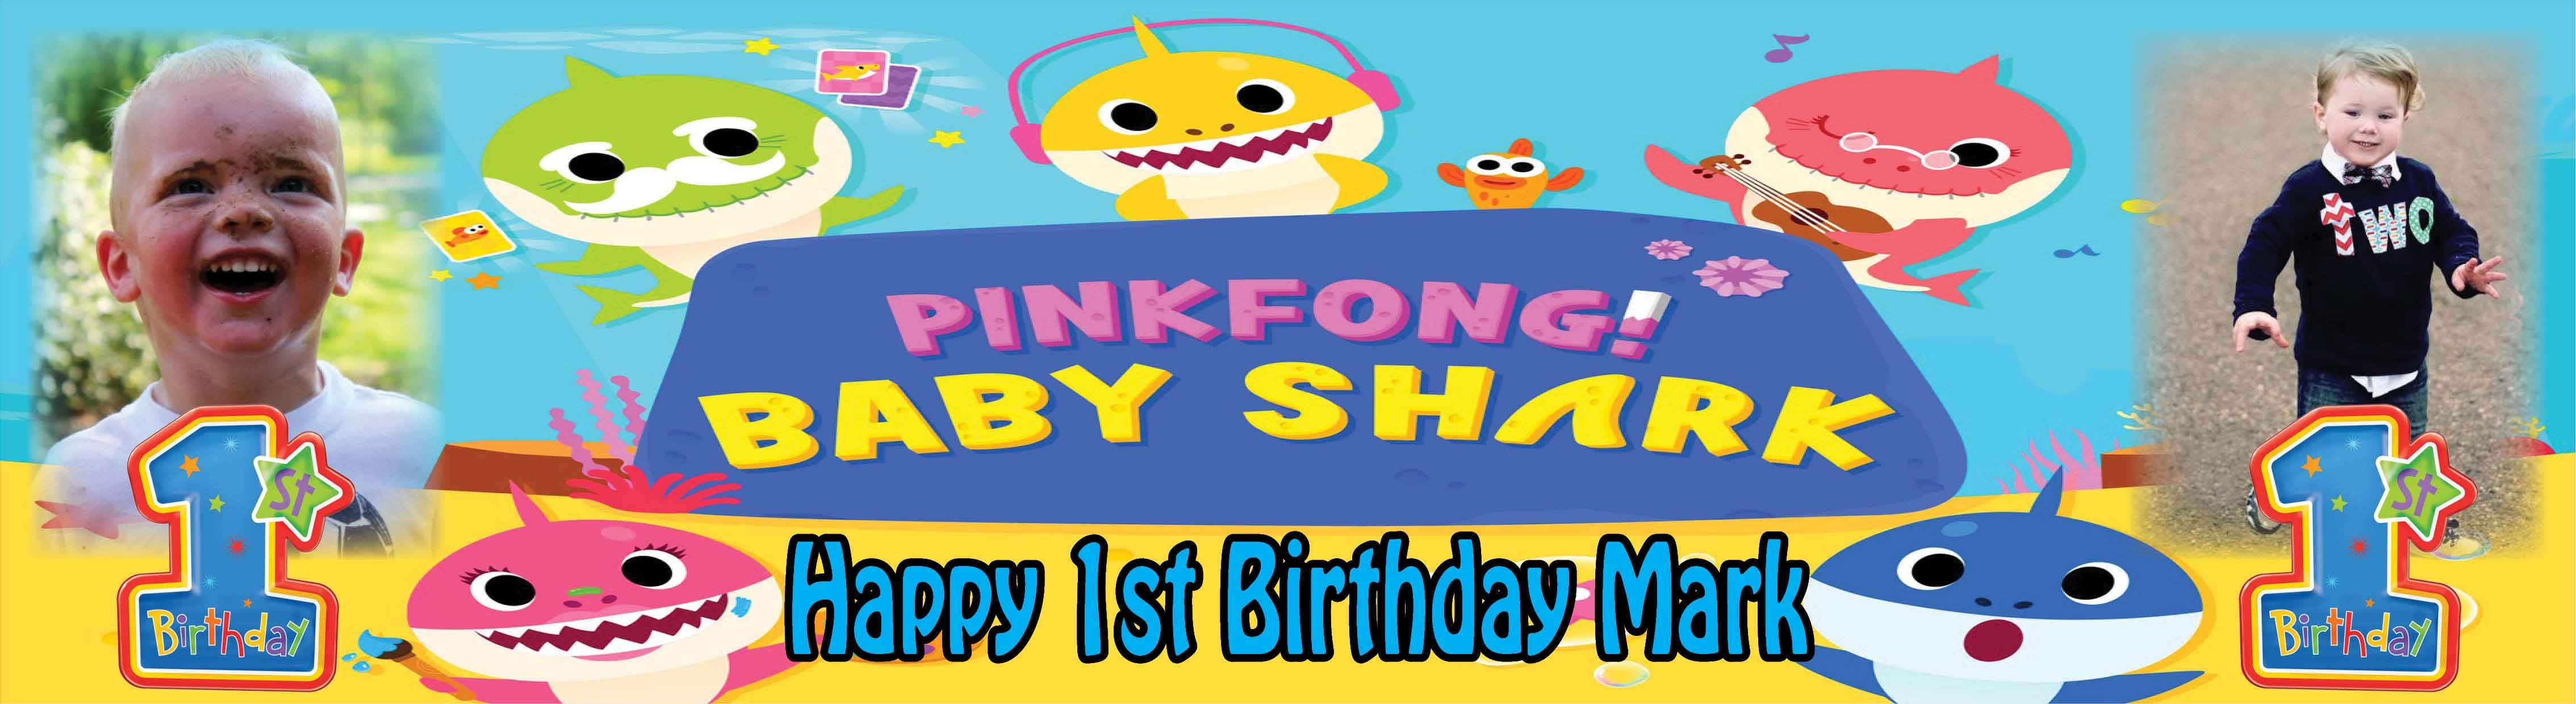 Baby Shark (Pinkfong) Birthday Banner